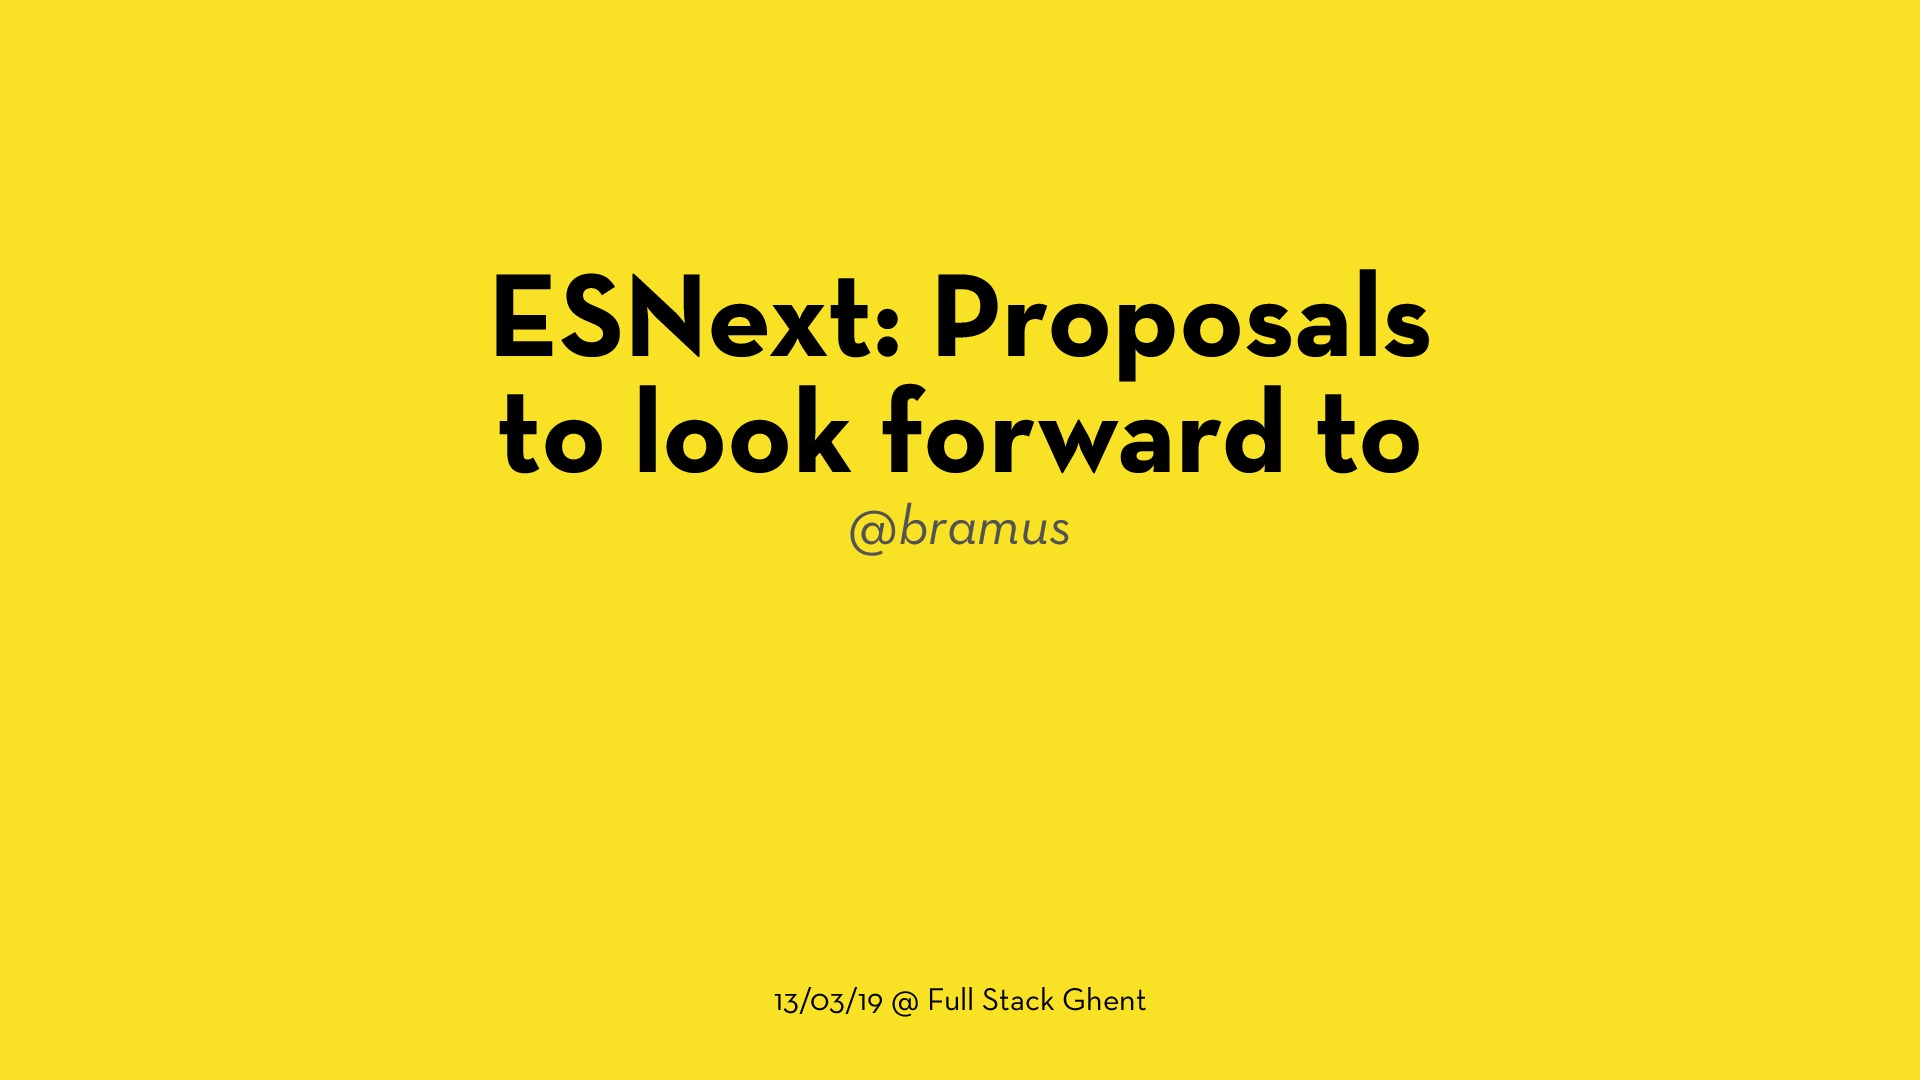 ESNext: Proposals to look forward to (2019.03.13 @ Full Stack Ghent)